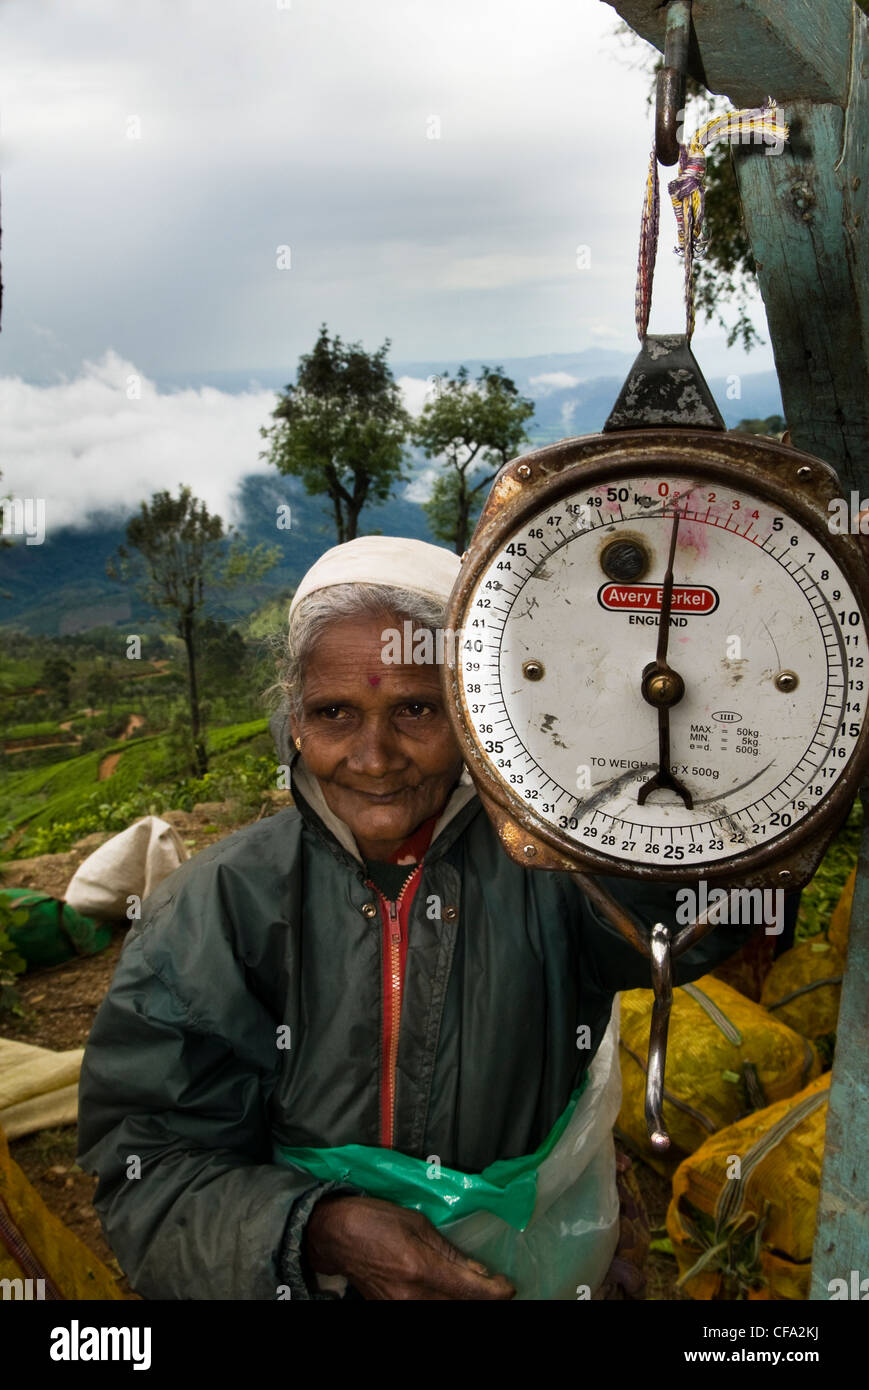 An old woman holding an old scale used to weigh the Tea leaves picked in the Tea plantations in Sri Lanka. - Stock Image